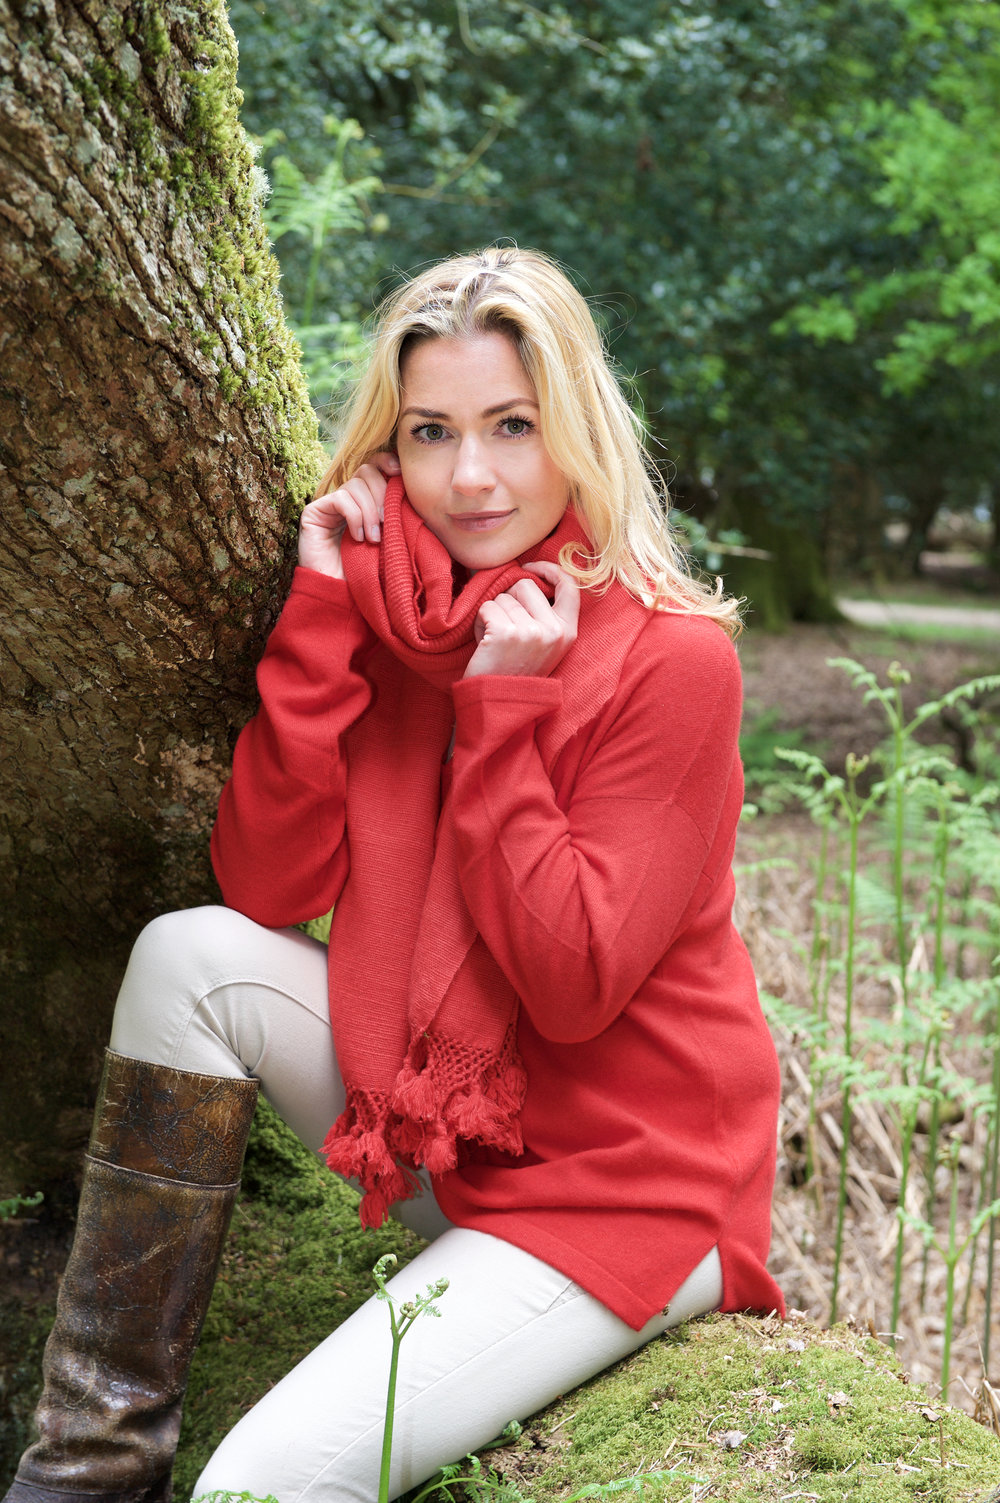 Knitwear - The softest cashmere knitwear on earth, you will never want to wear anything else.